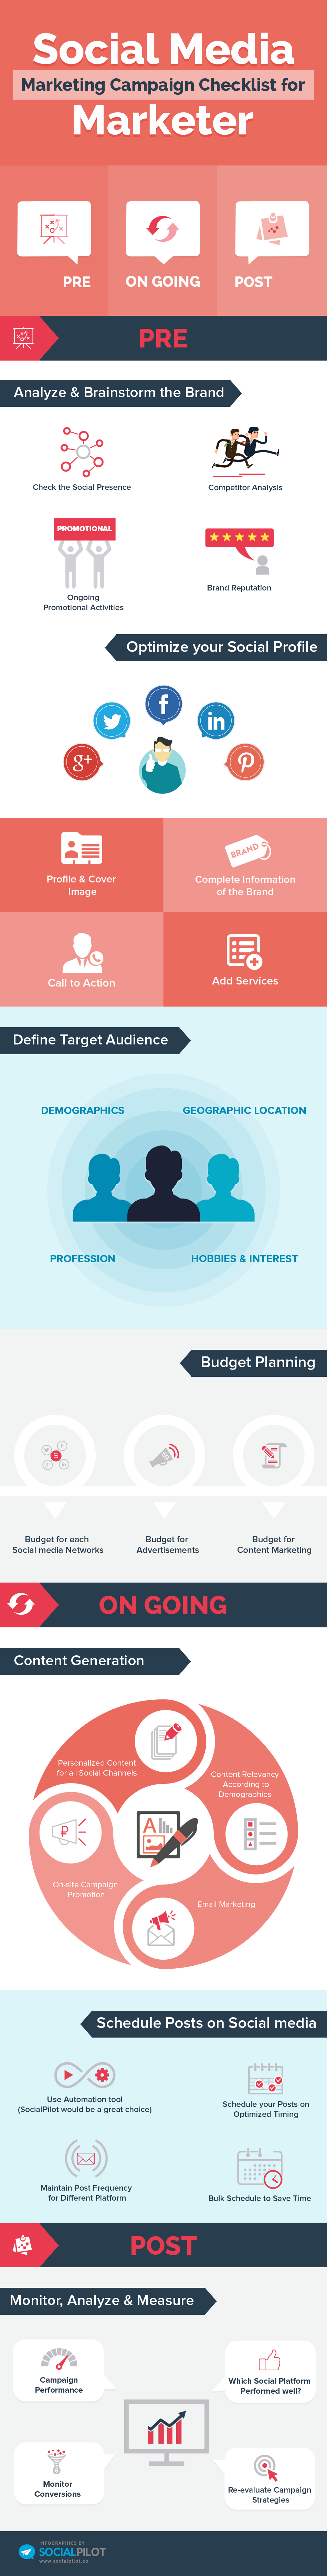 Social Media Marketing Campaign Checklist For Marketer - #Infographic